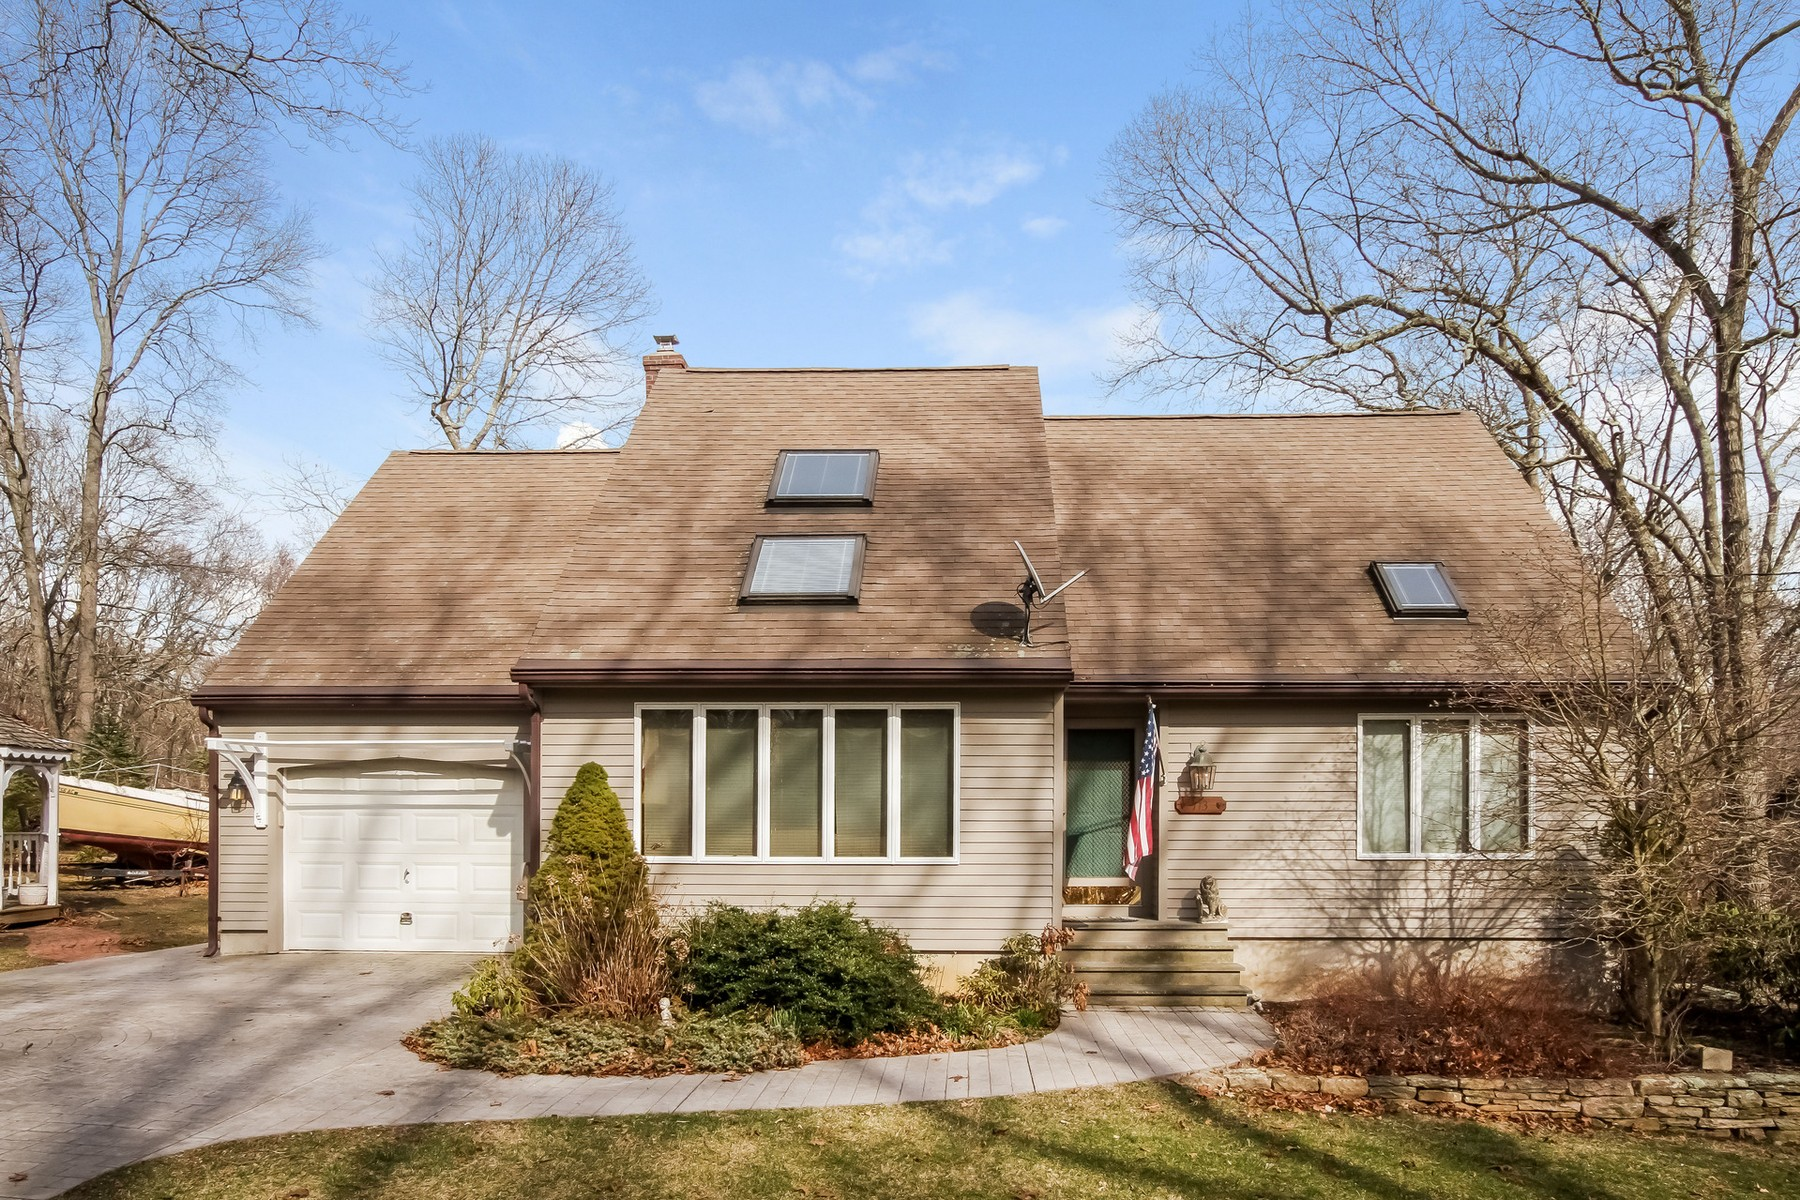 Single Family Home for Sale at Beautiful cape in desirable beach community 113 Spring Glen Rd East Lyme, Connecticut, 06357 United States